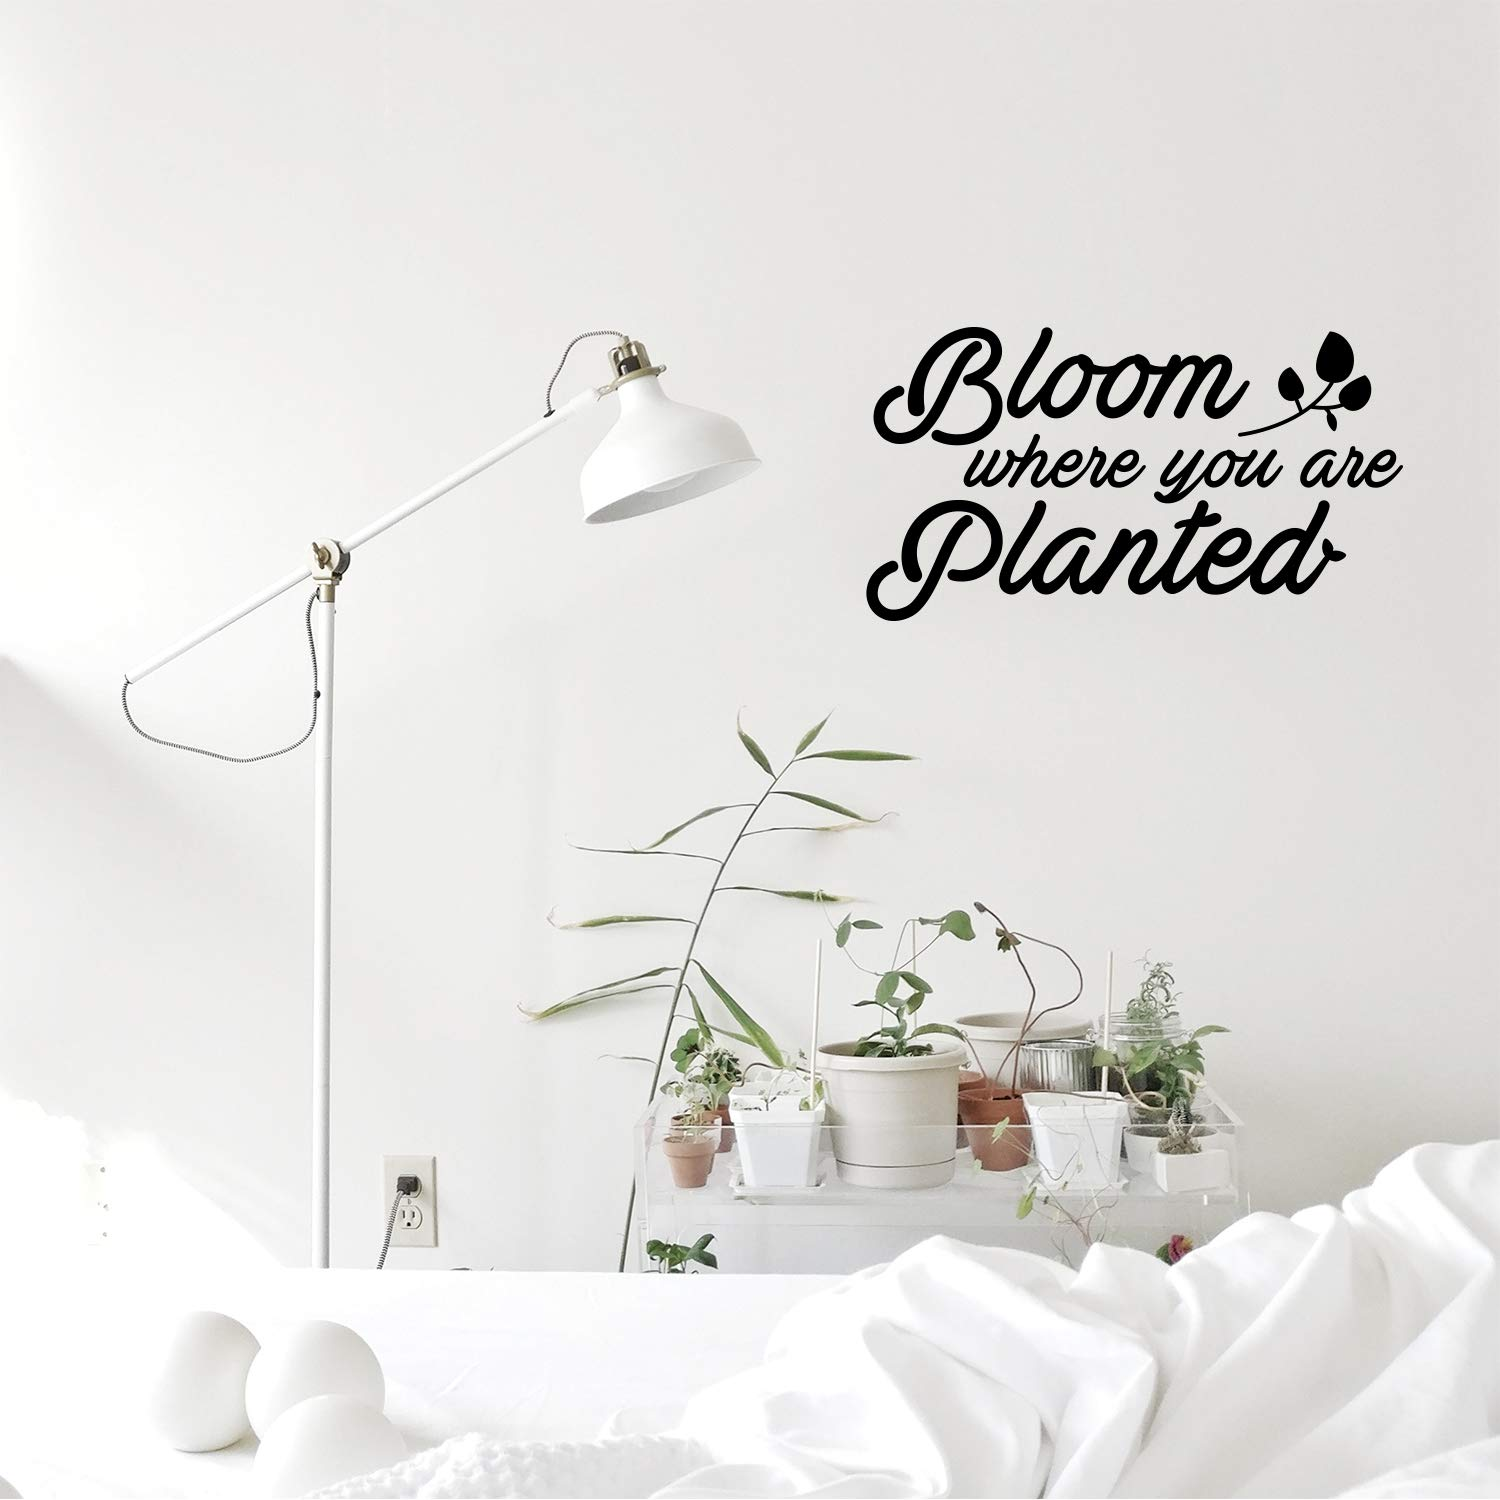 Funny English Sentences Wall Sticker Home Decoration Accessories Decor Living Room Bedroom Removable Art Mural